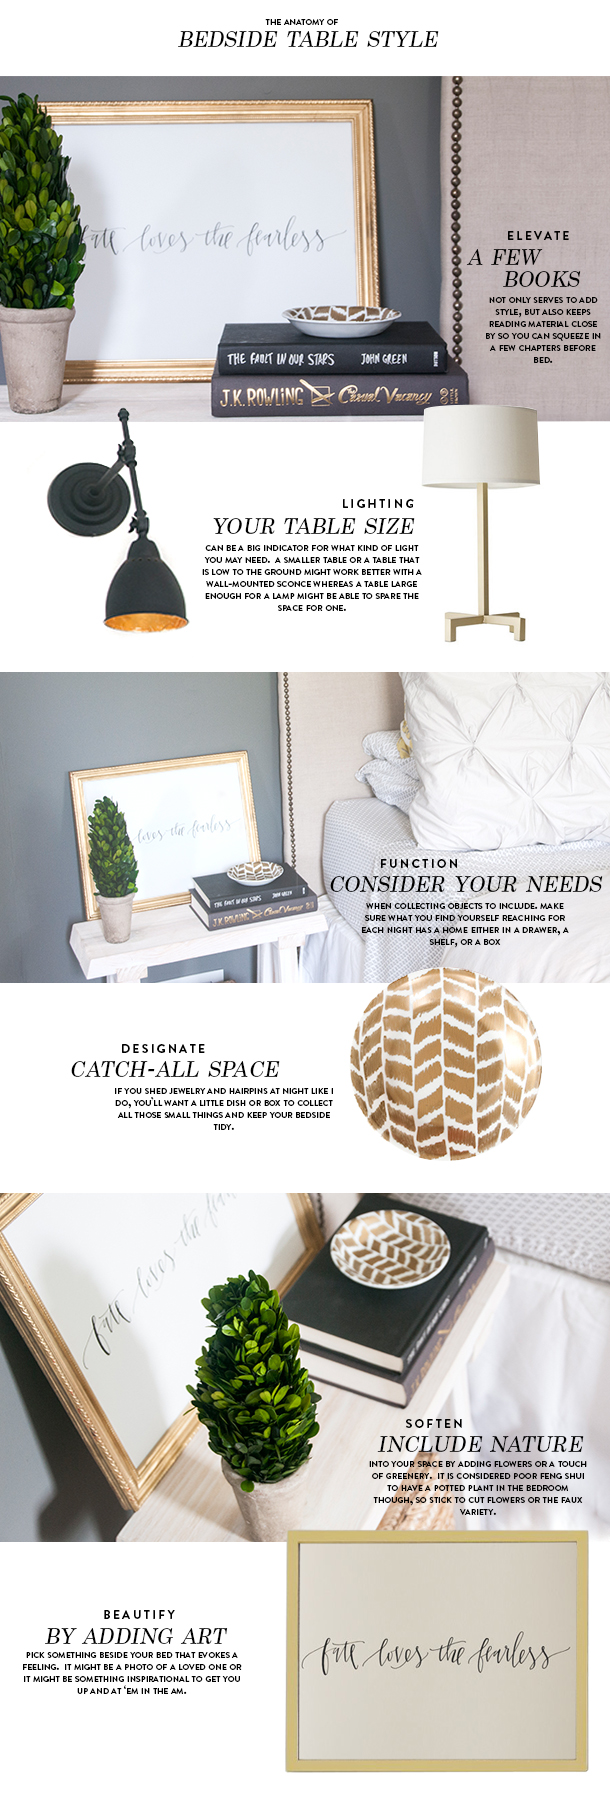 styling product breakdown - bedside table